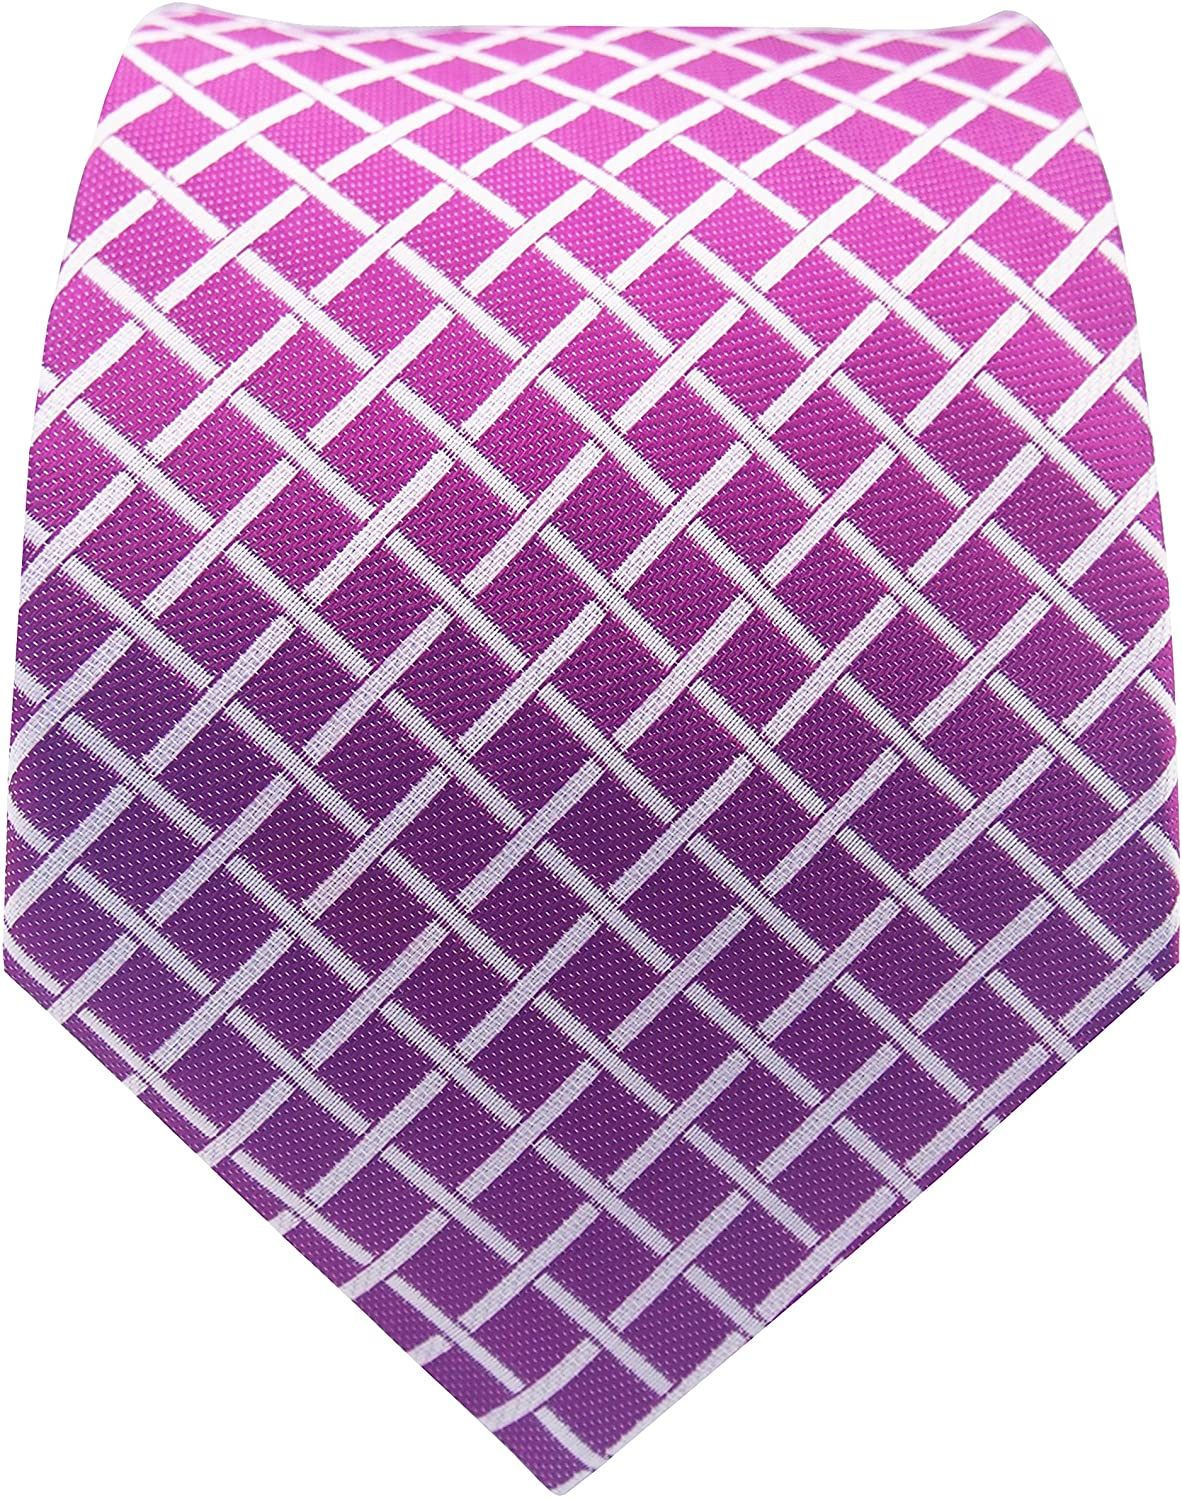 PilotMan Men's Tie Cross-Striped Necktie Checks Silk Tie With Gift Box